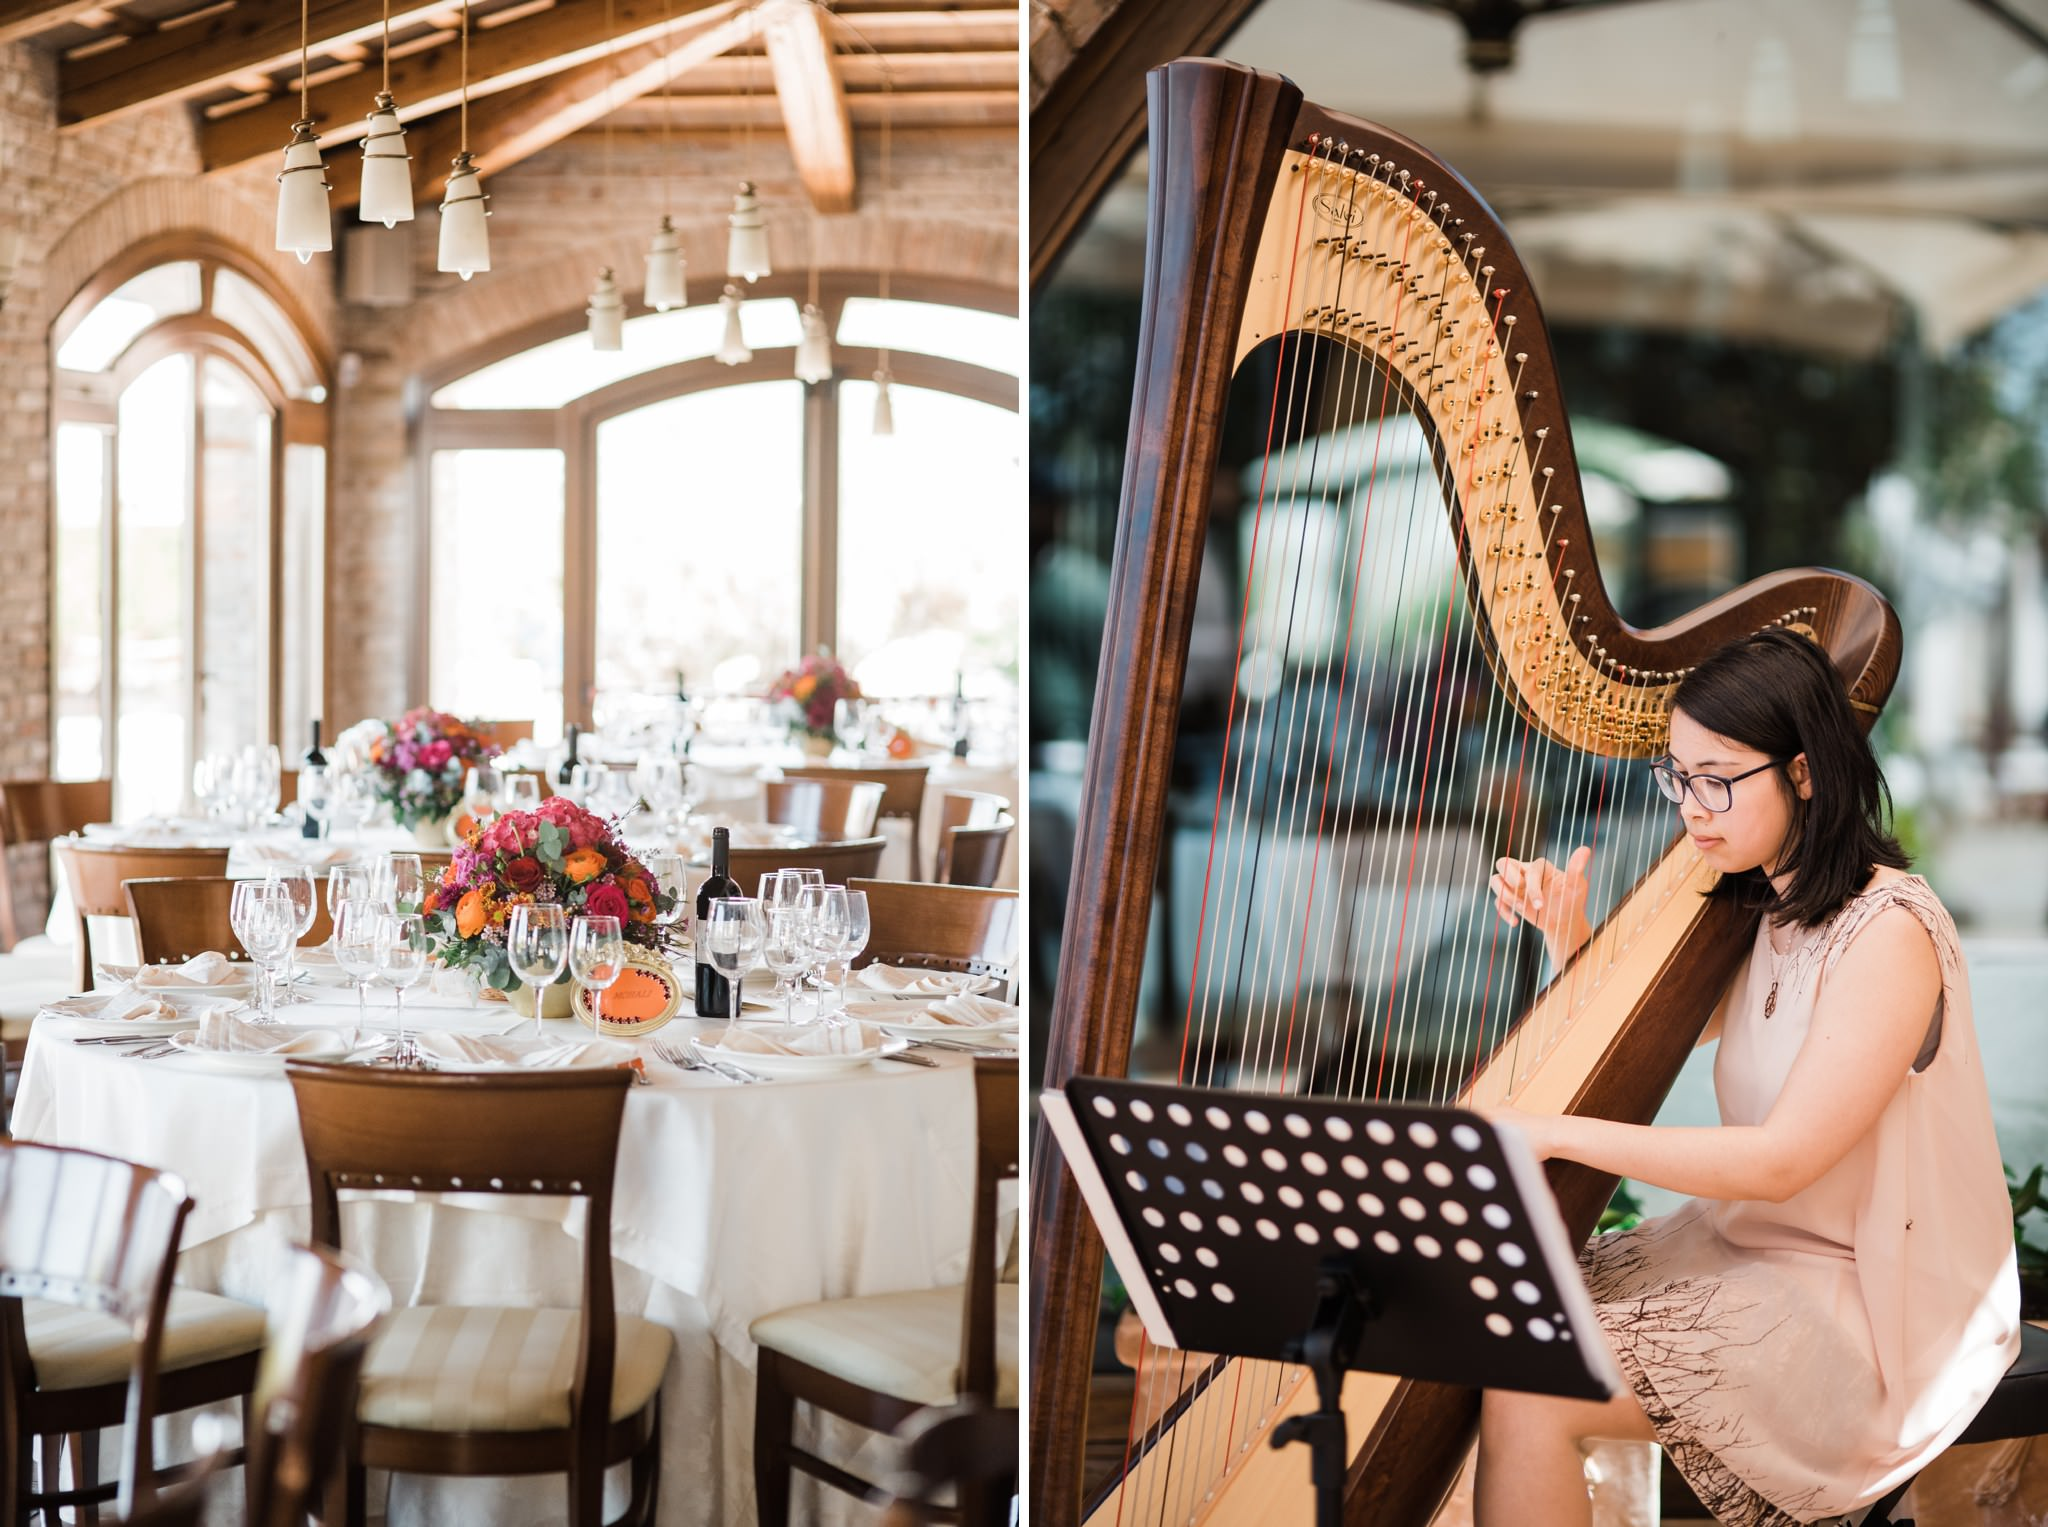 Harp Player Wedding Photographer Italy